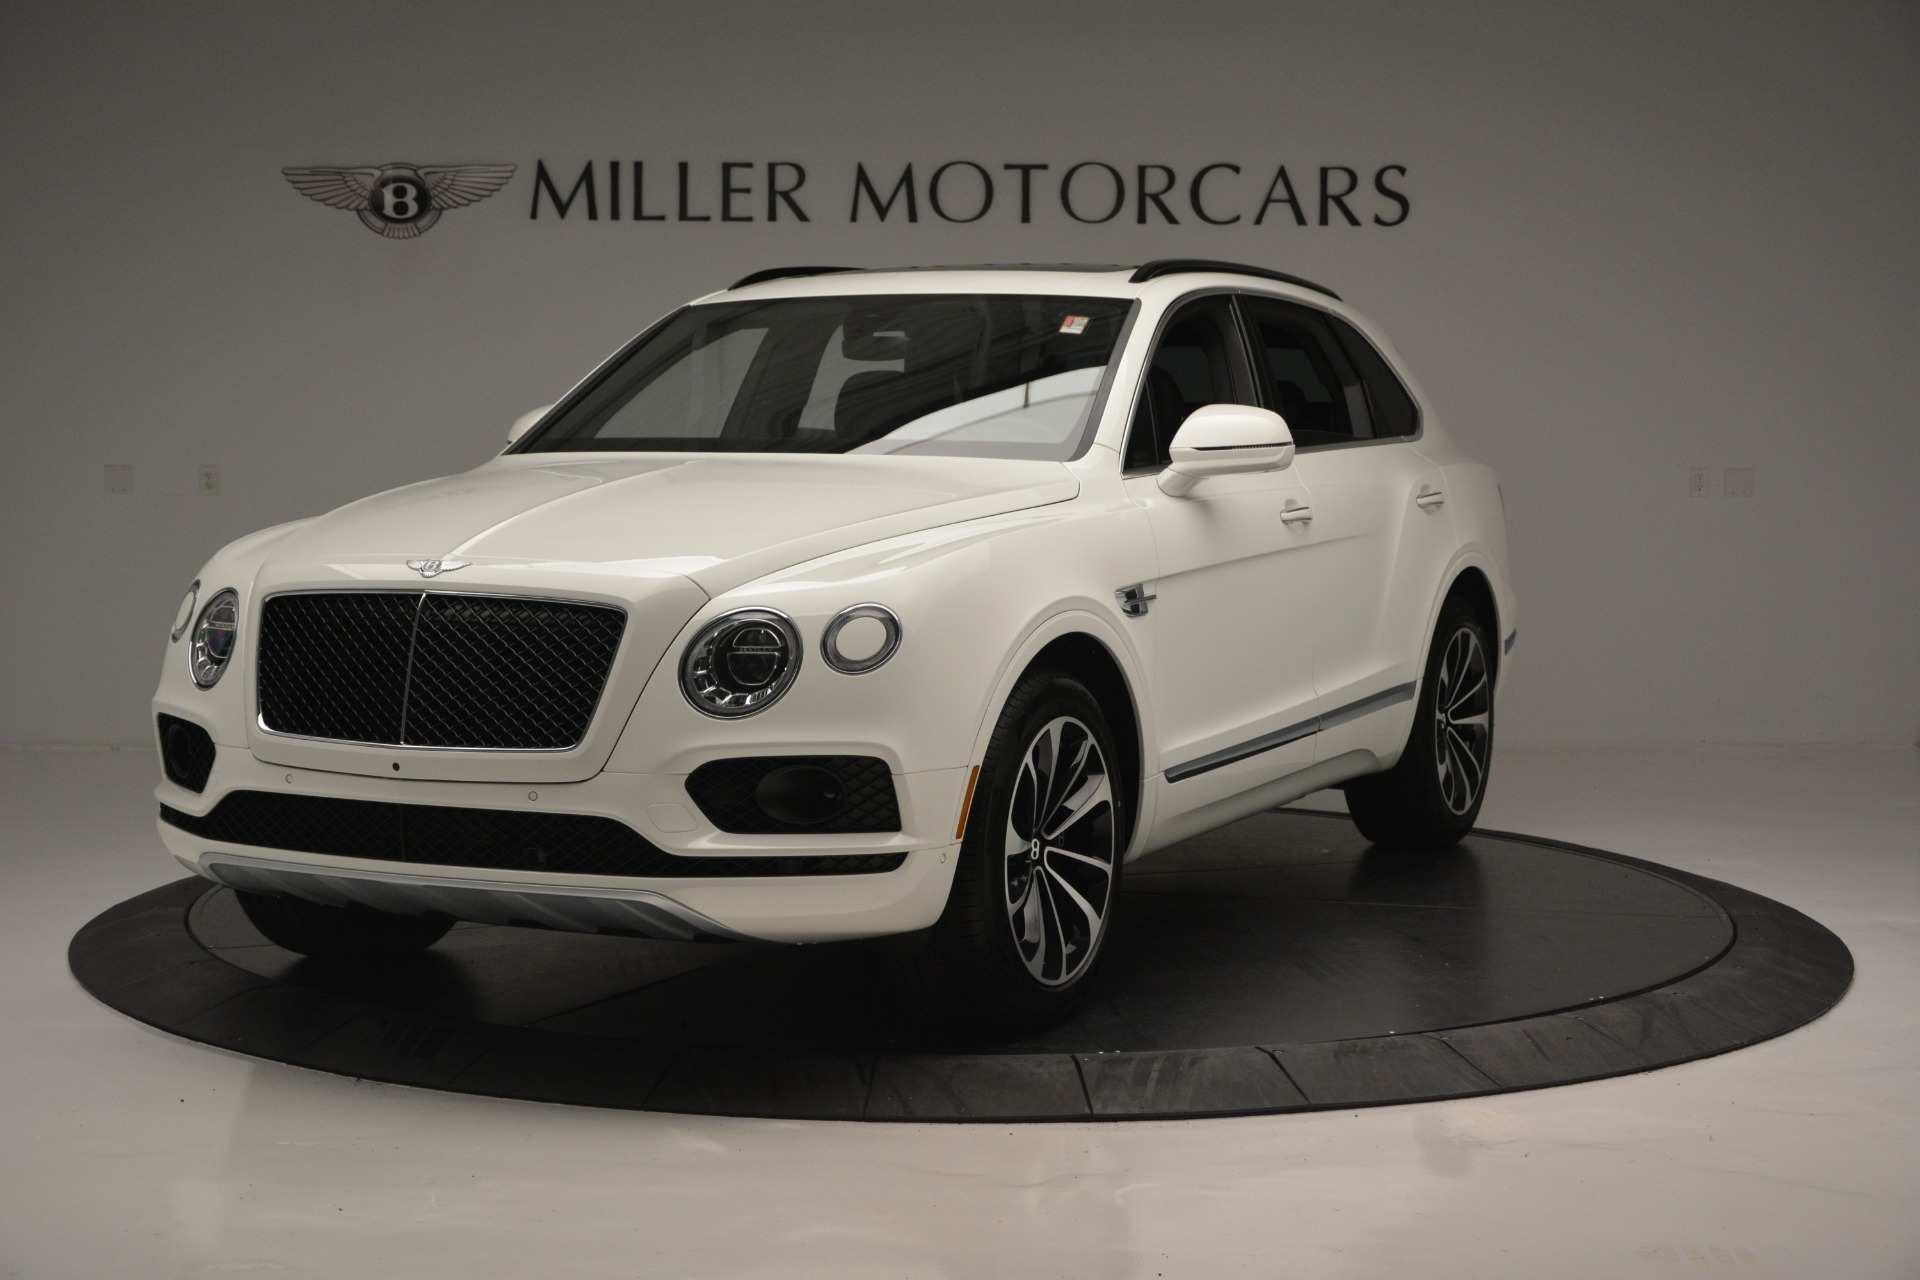 34 Gallery of 2019 Bentley Bentayga V8 Price Pricing by 2019 Bentley Bentayga V8 Price